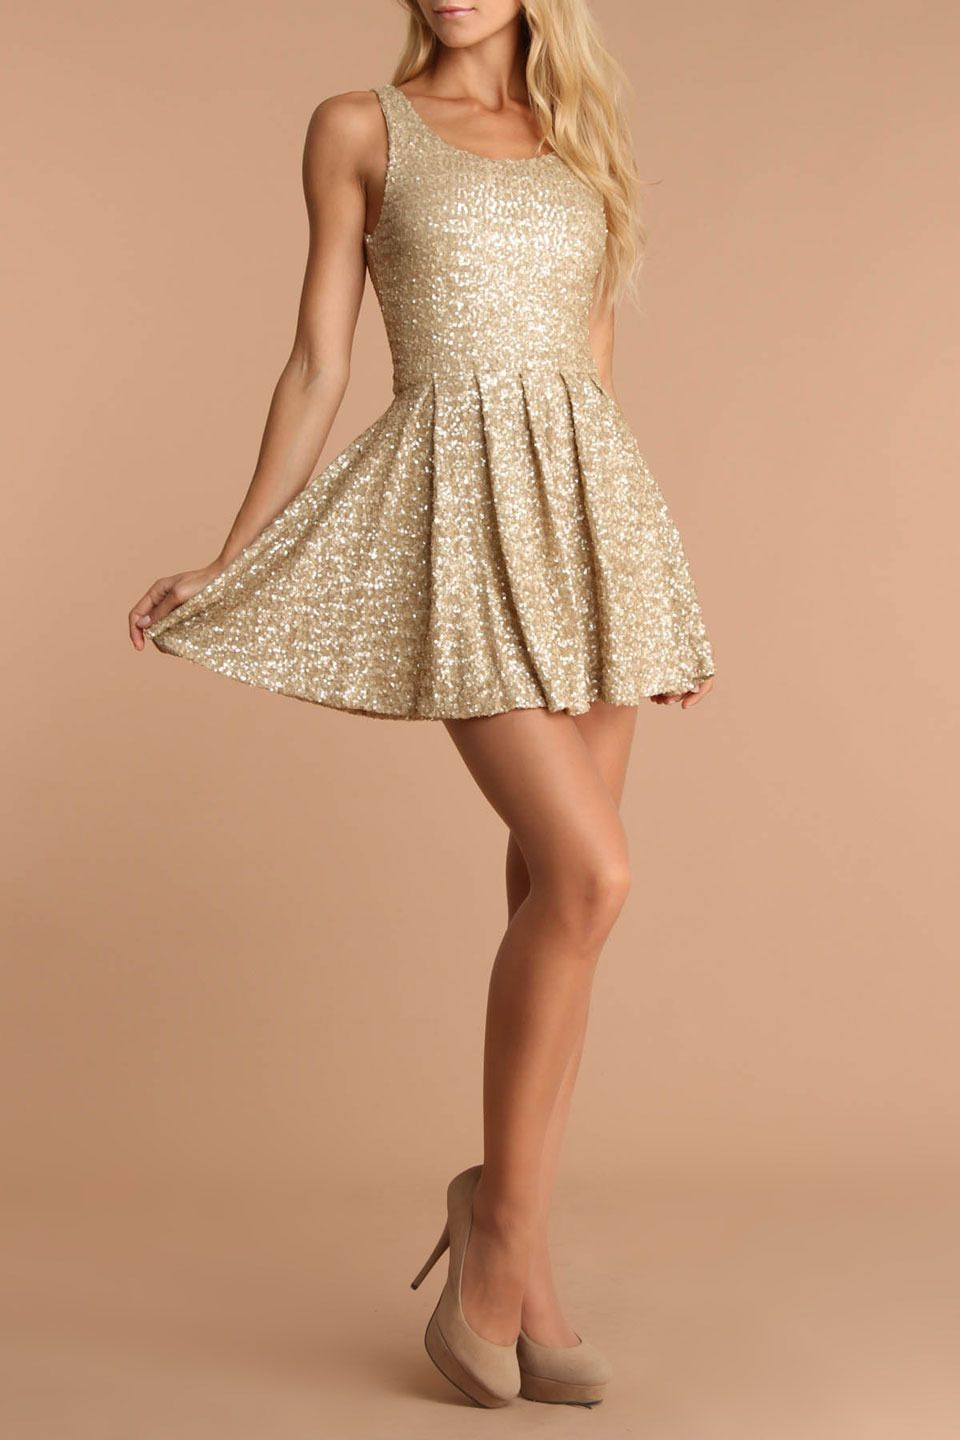 La Cite Fit and Flare Sequin Dress In Gold | Clothes | Pinterest ...